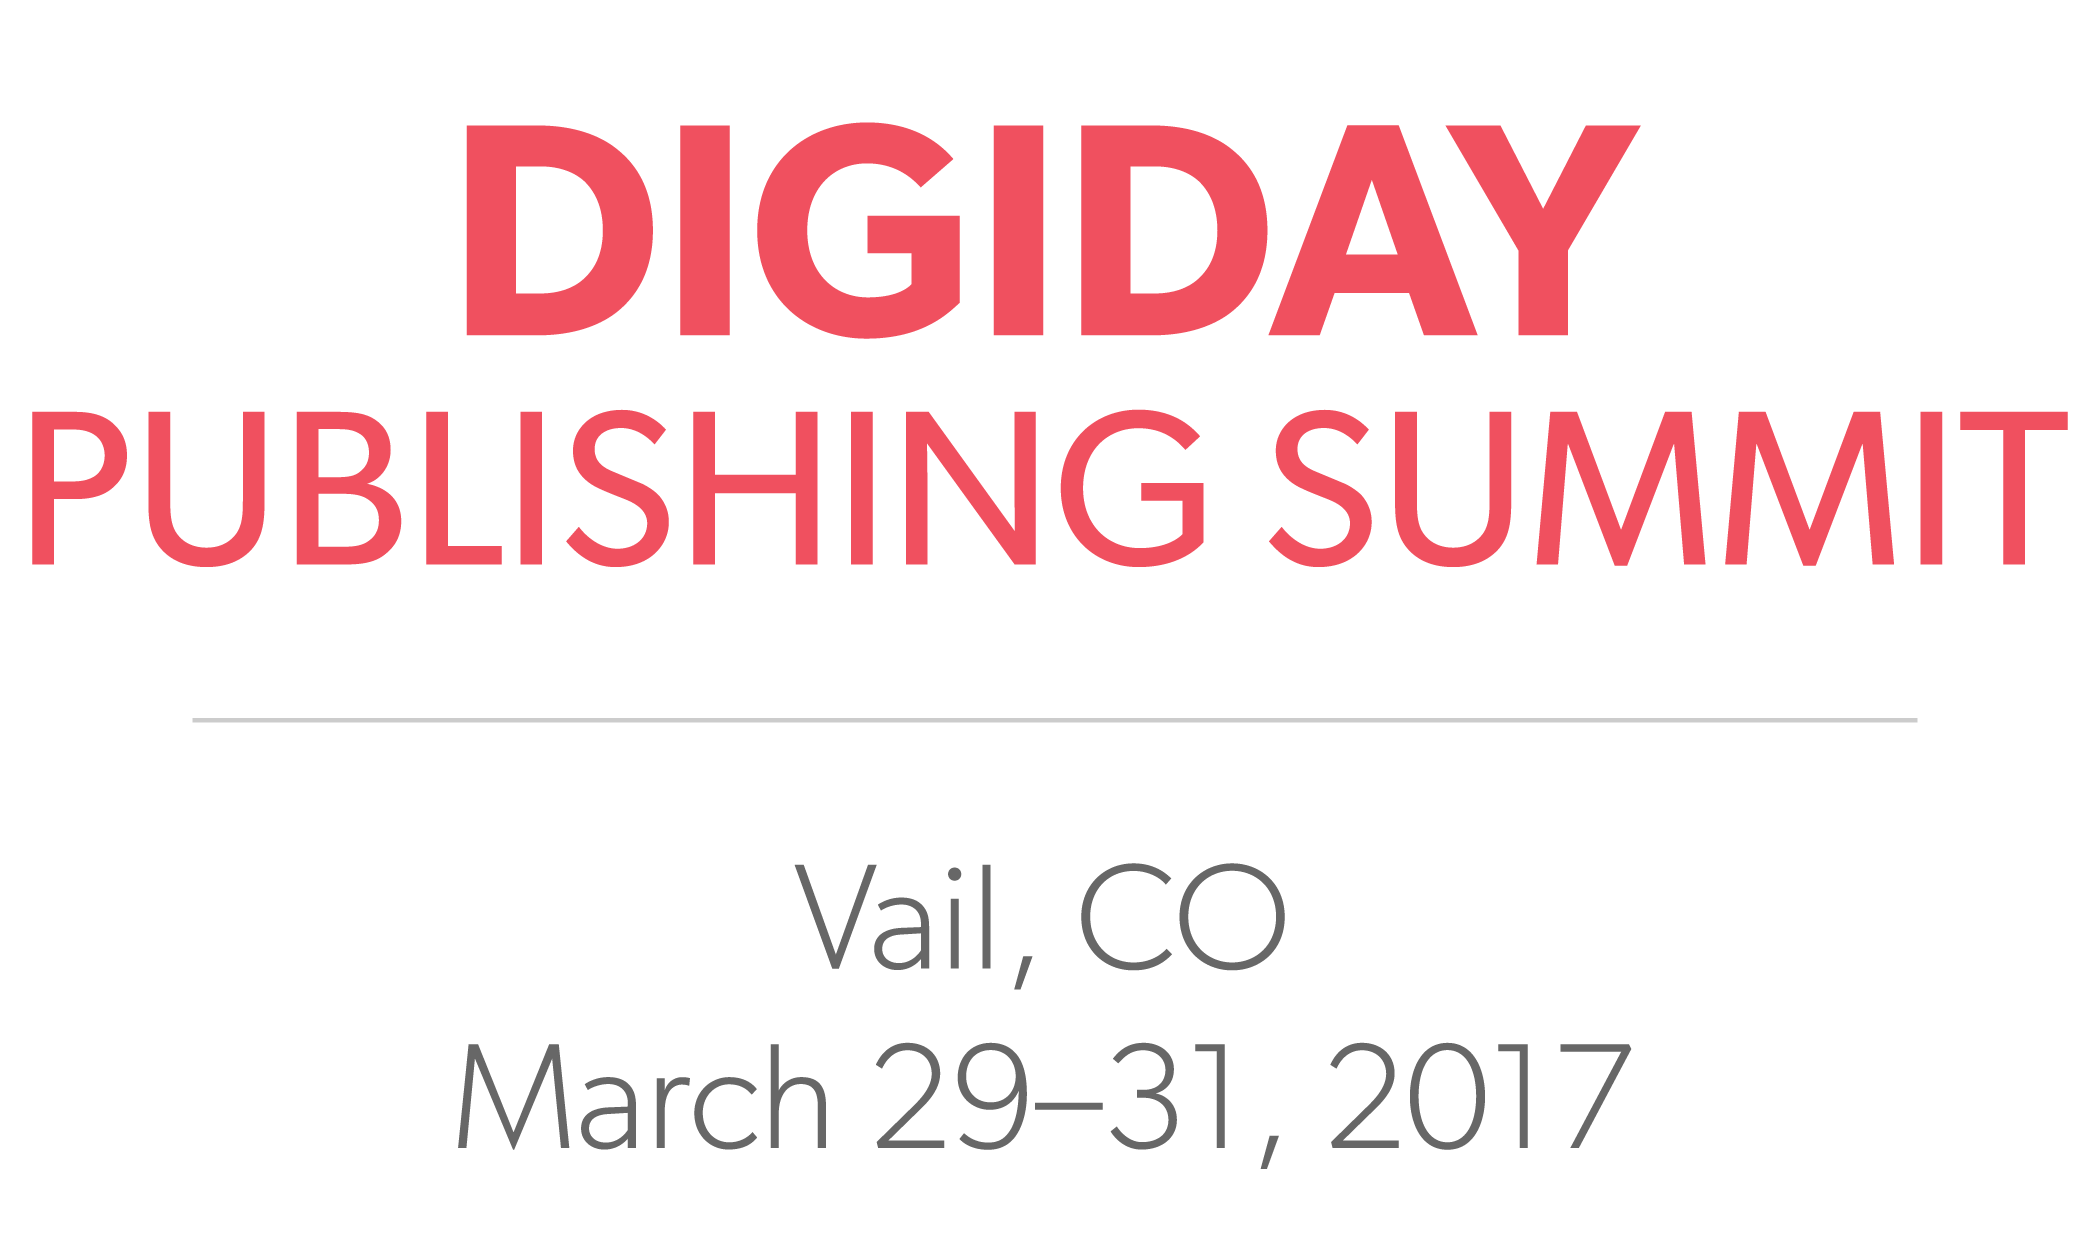 Digiday Publishing Summit 2017 1 - Digiday Publishing Summit - Vail